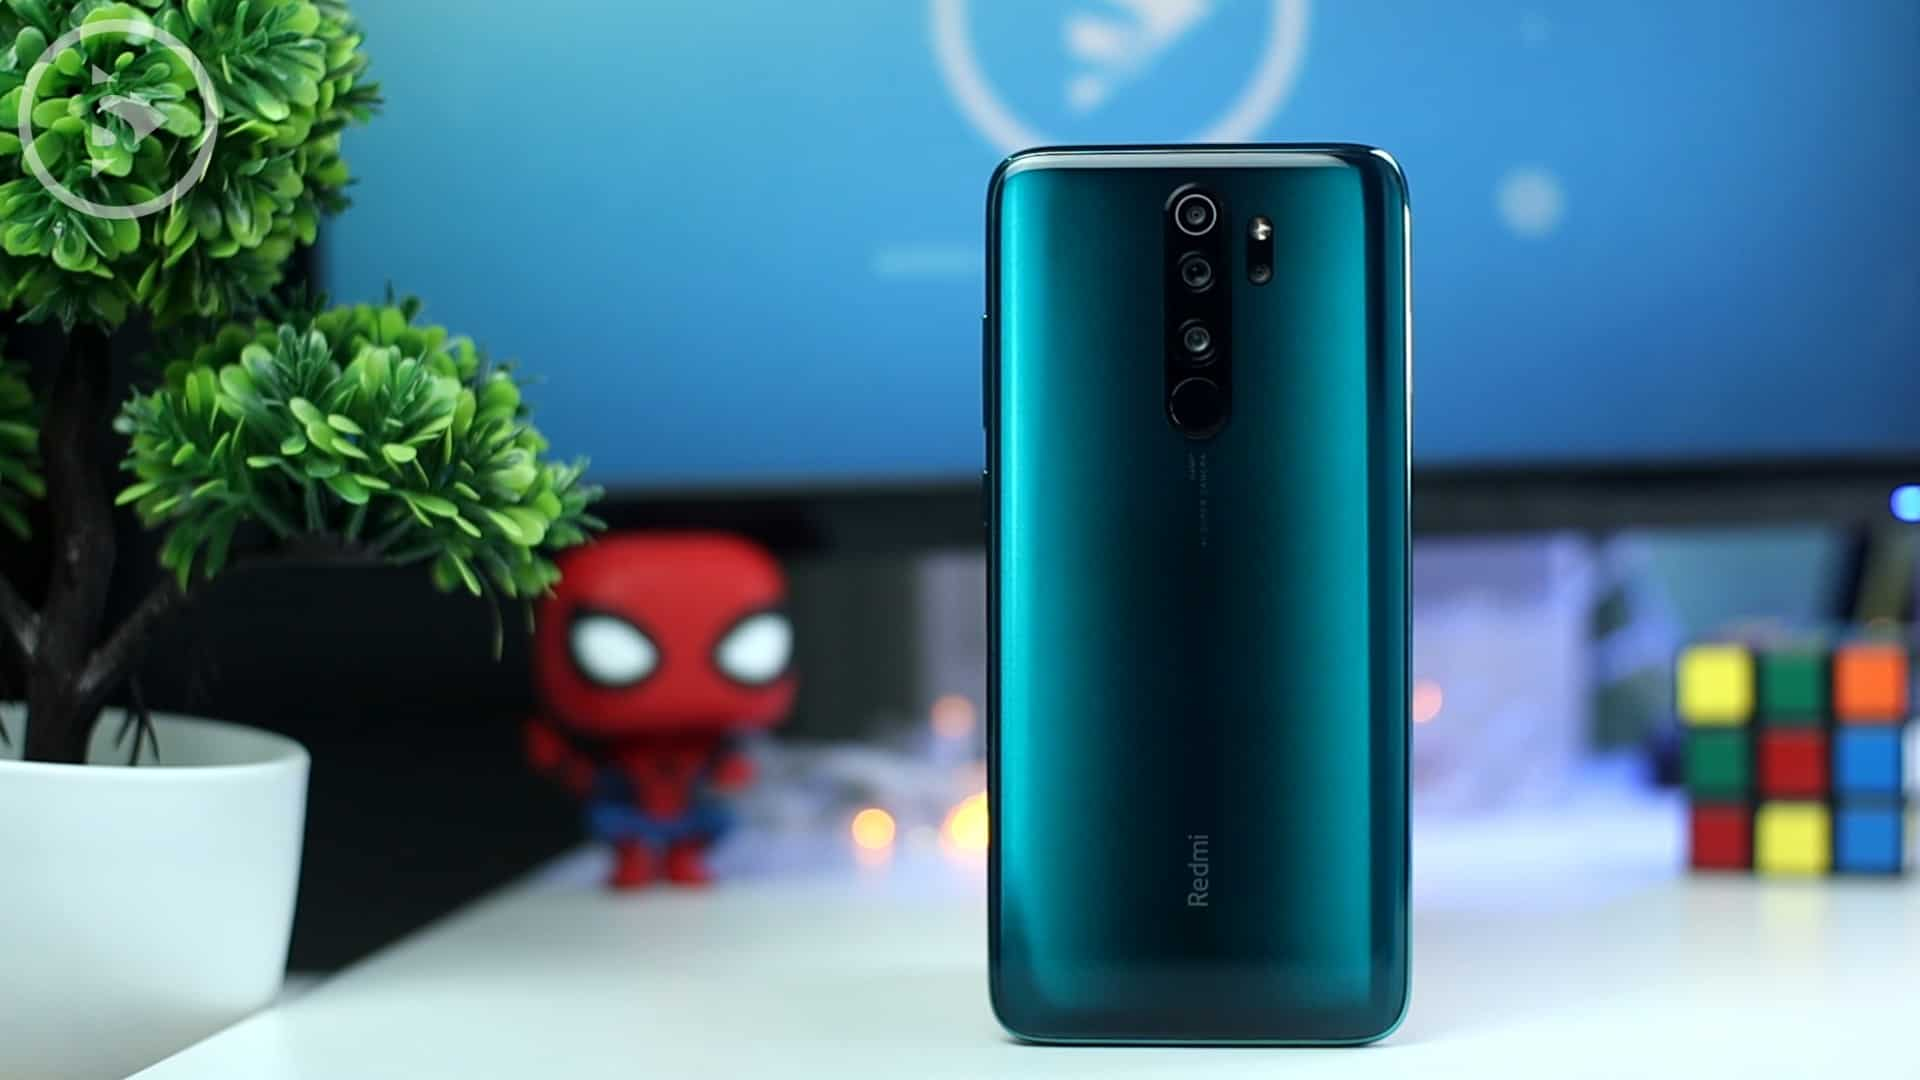 Review Xiaomi Redmi Note 8 Pro Indonesia Versi Resmi - Hijau Forest Green - BUILD QUALITY